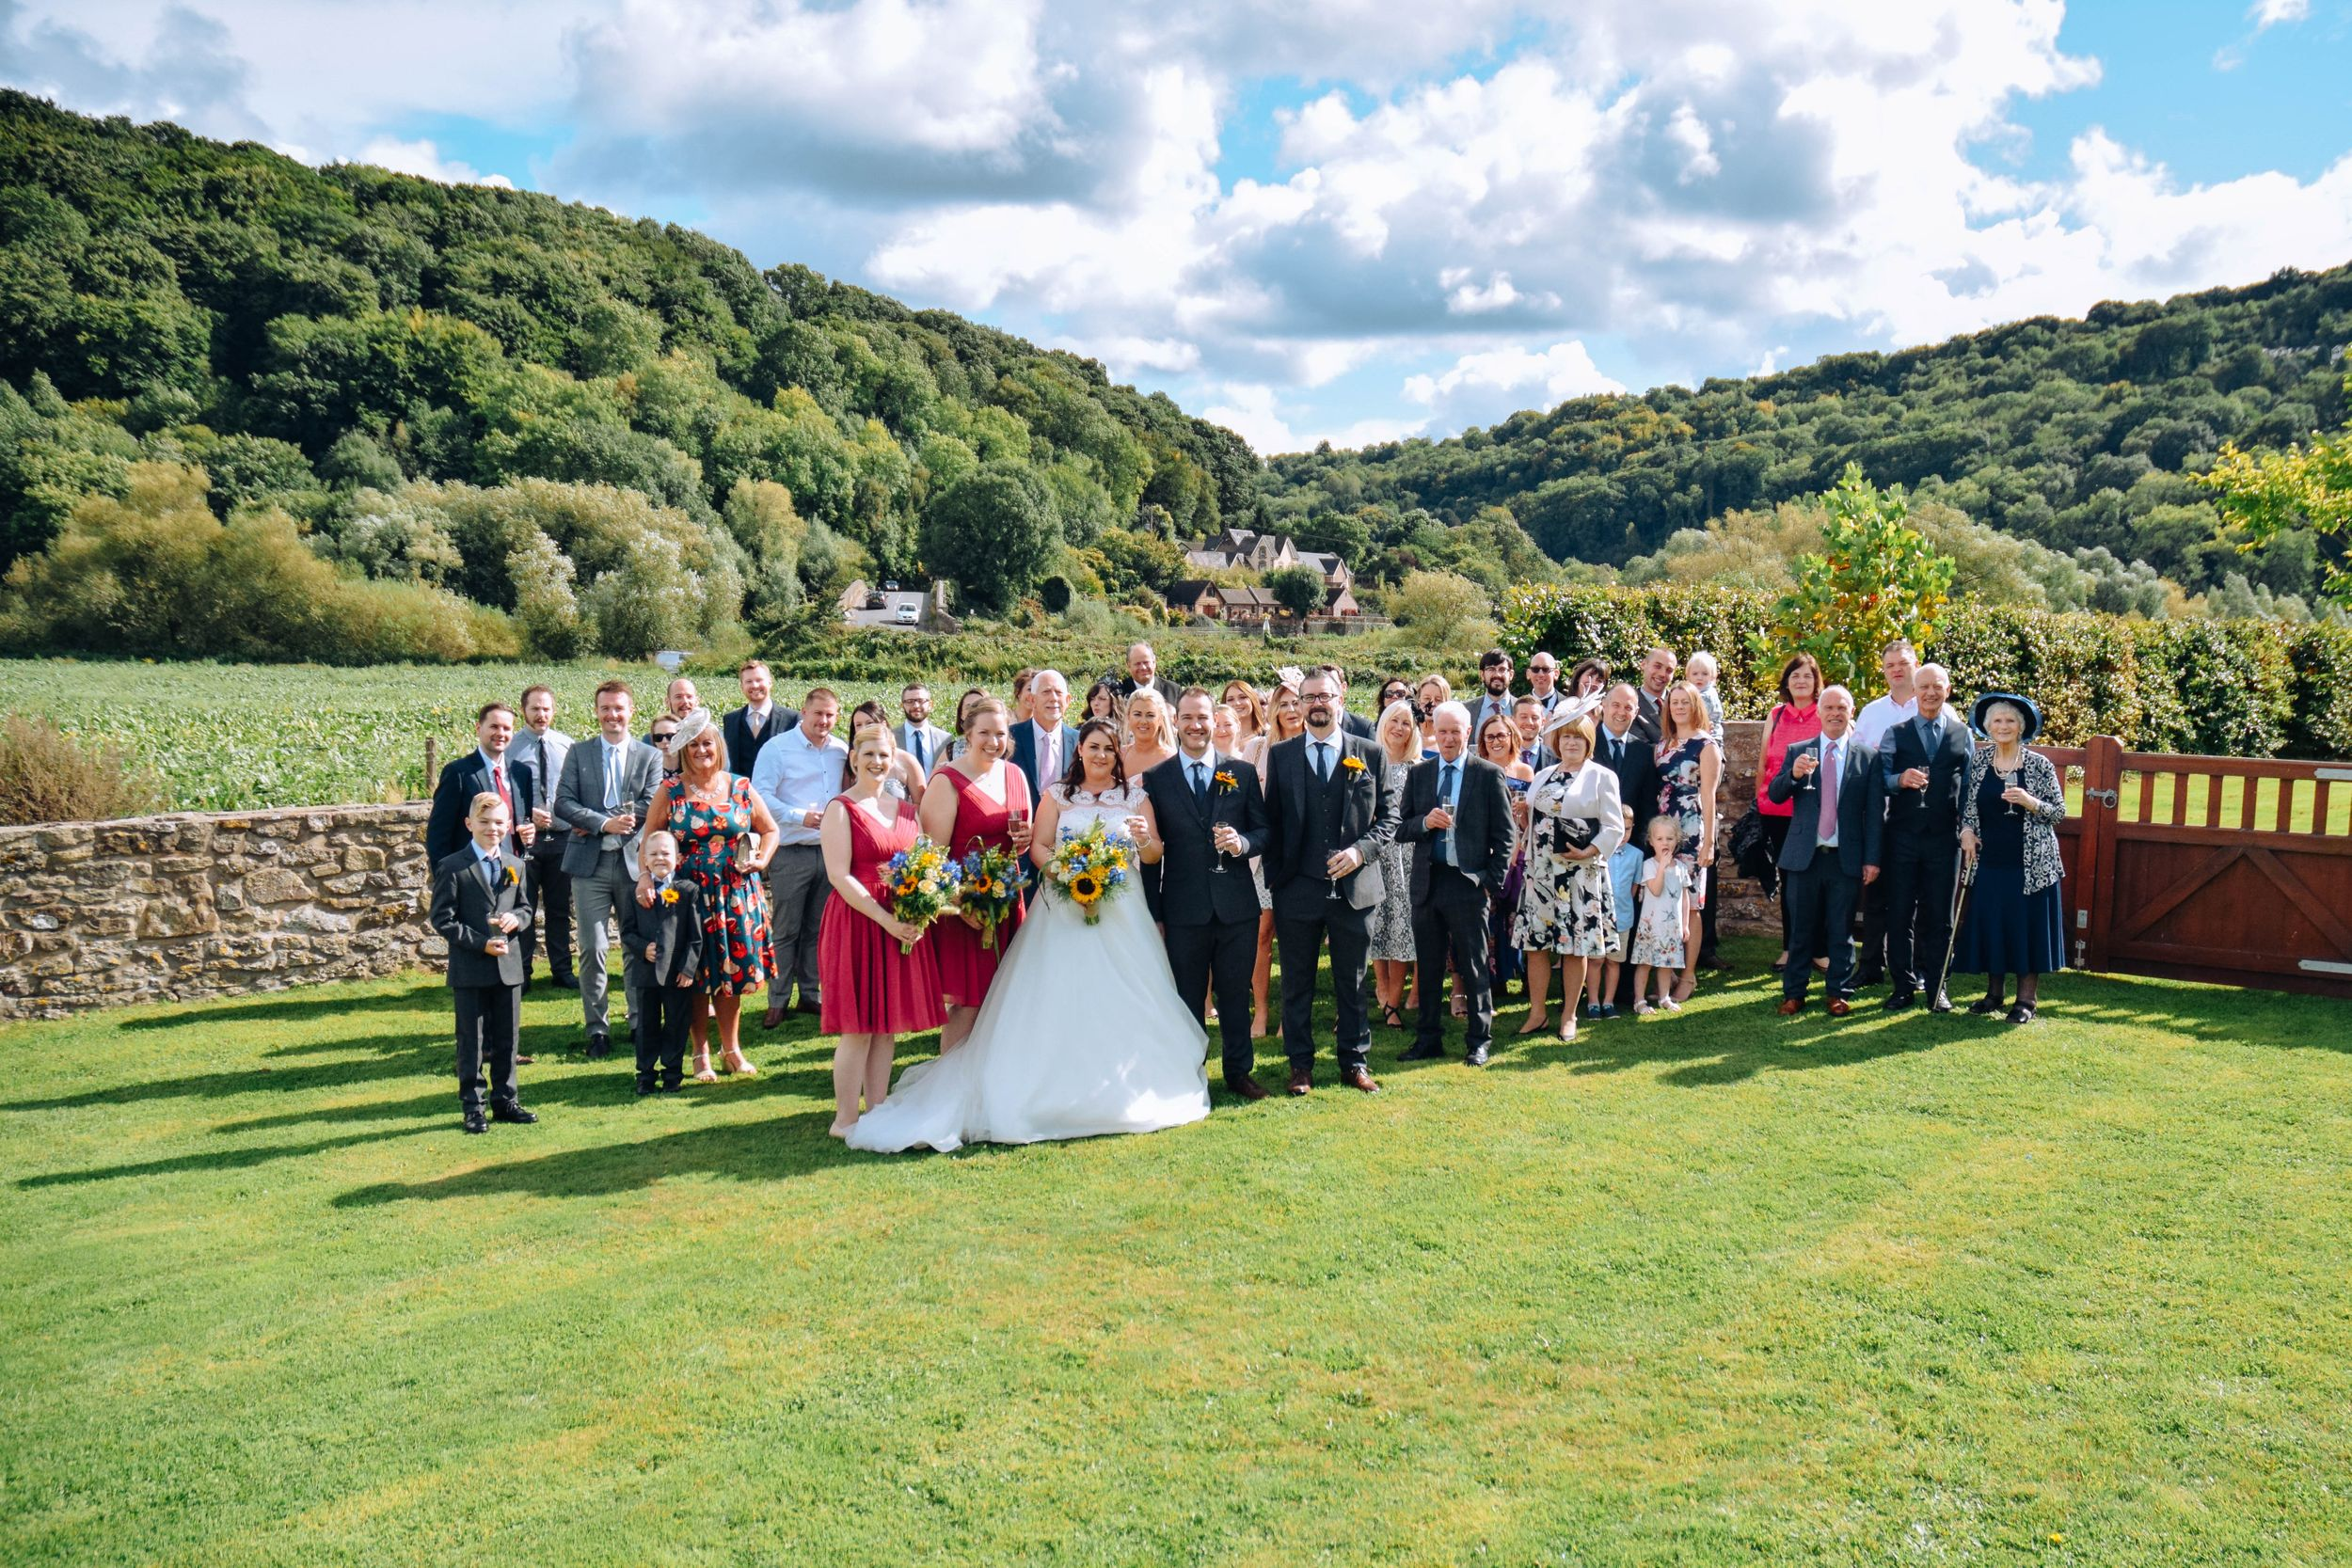 Zara Davis Wedding Photography near Stroud, Gloucestershire in the Cotswolds Flanesford Priory group photo